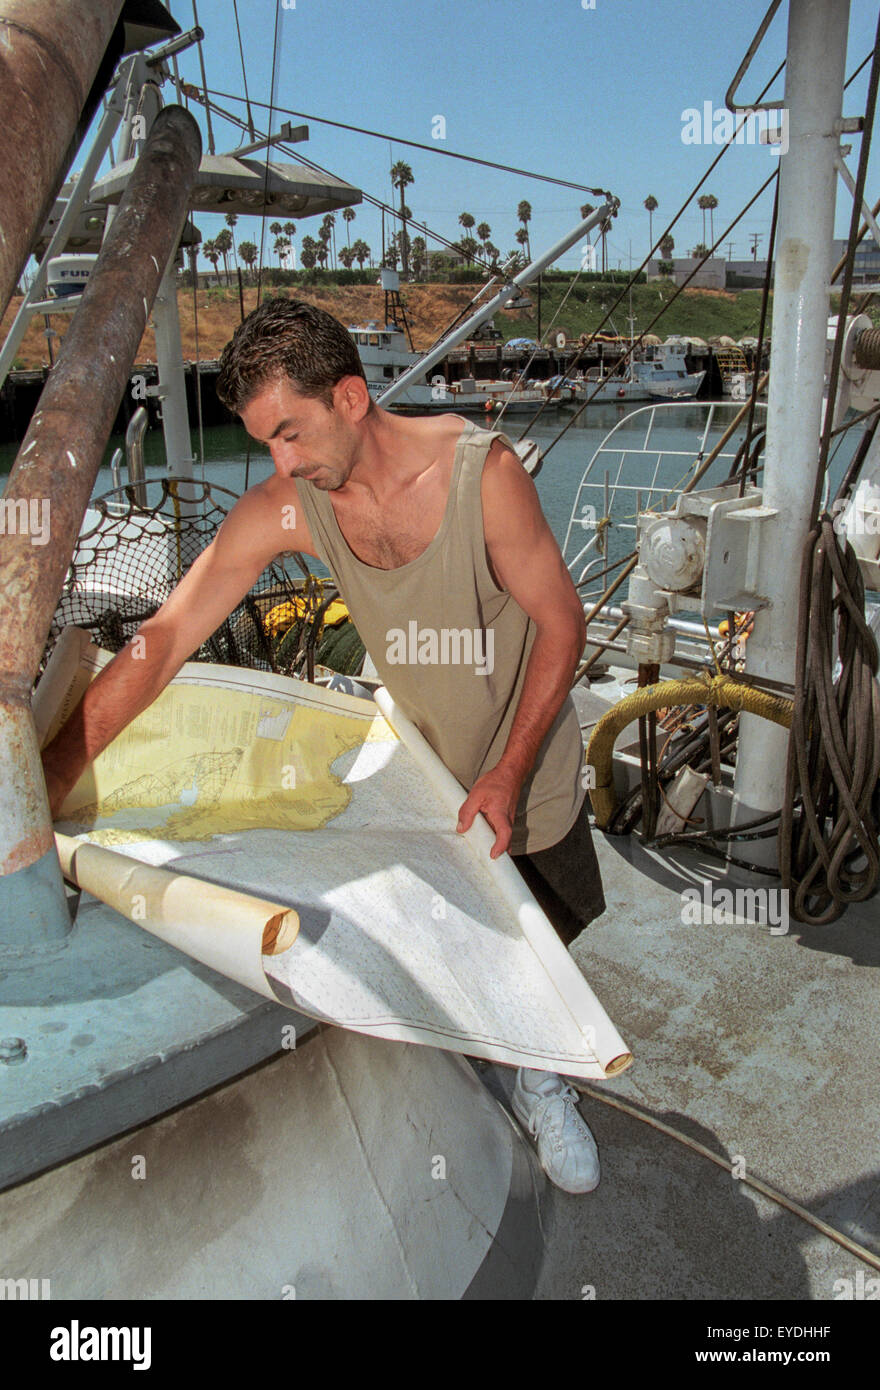 Before casting off from San Pedro, CA, a fisherman checks his navigation chart. - Stock Image